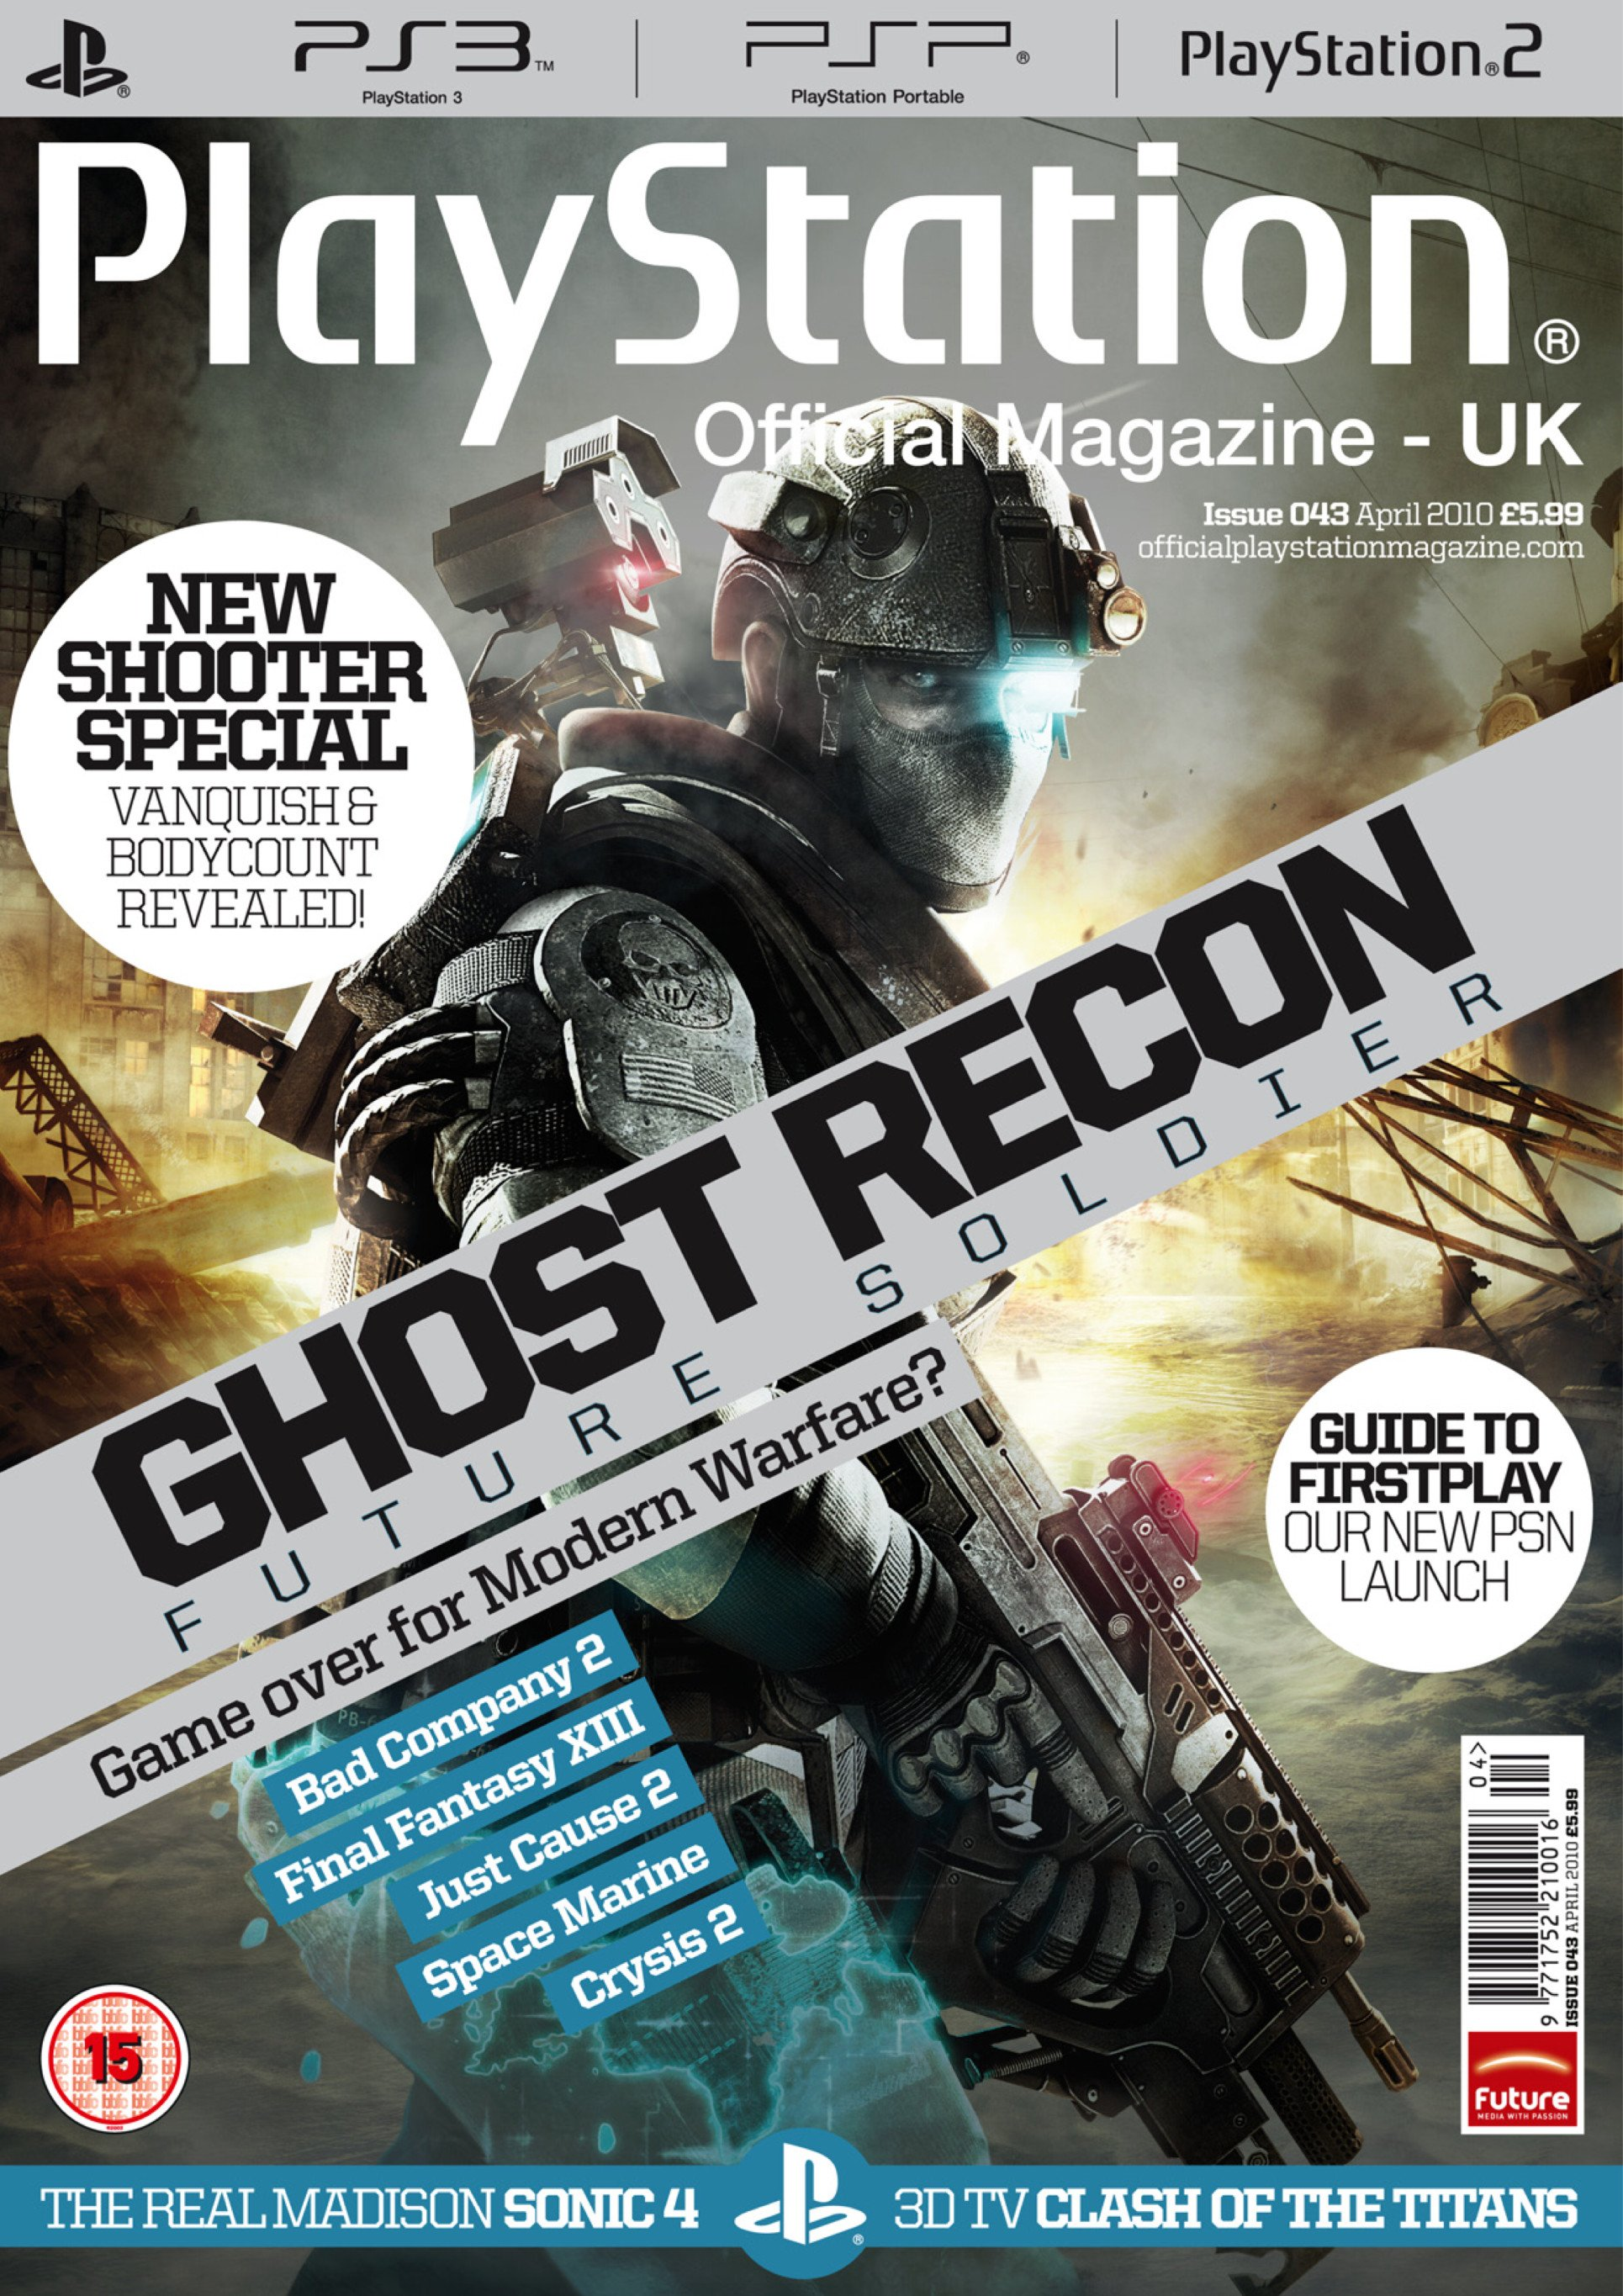 Playstation Official Magazine UK 043 (April 2010)